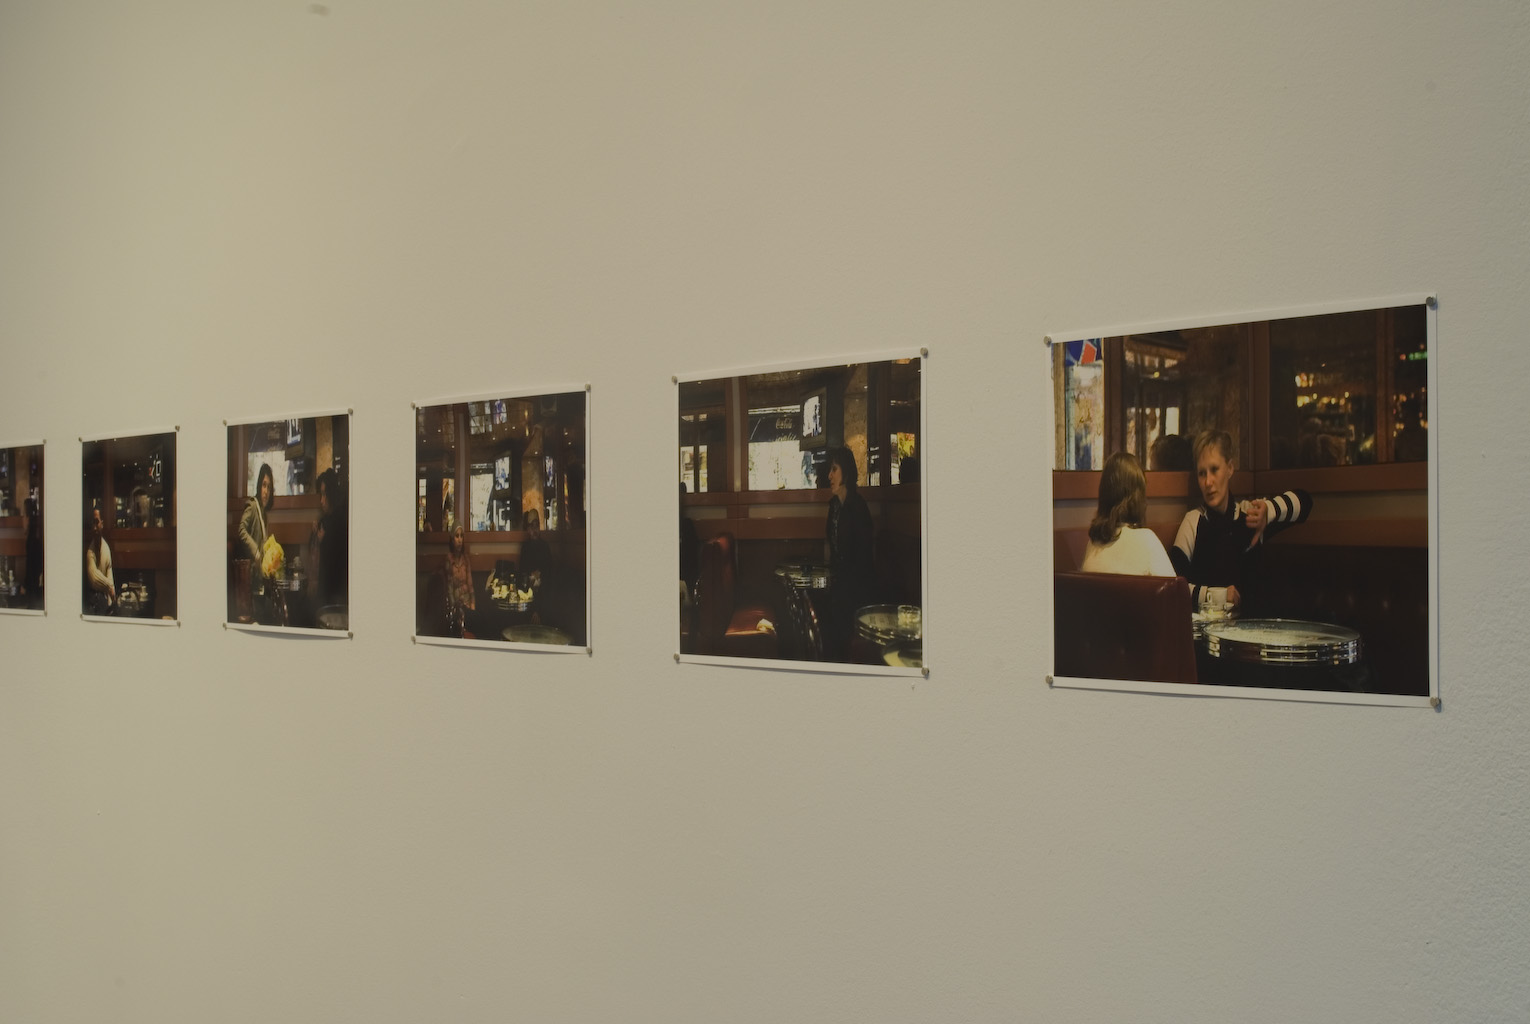 Cézanne's Eyes and Hands, 2009, installation view 2 - Oboro Gallery